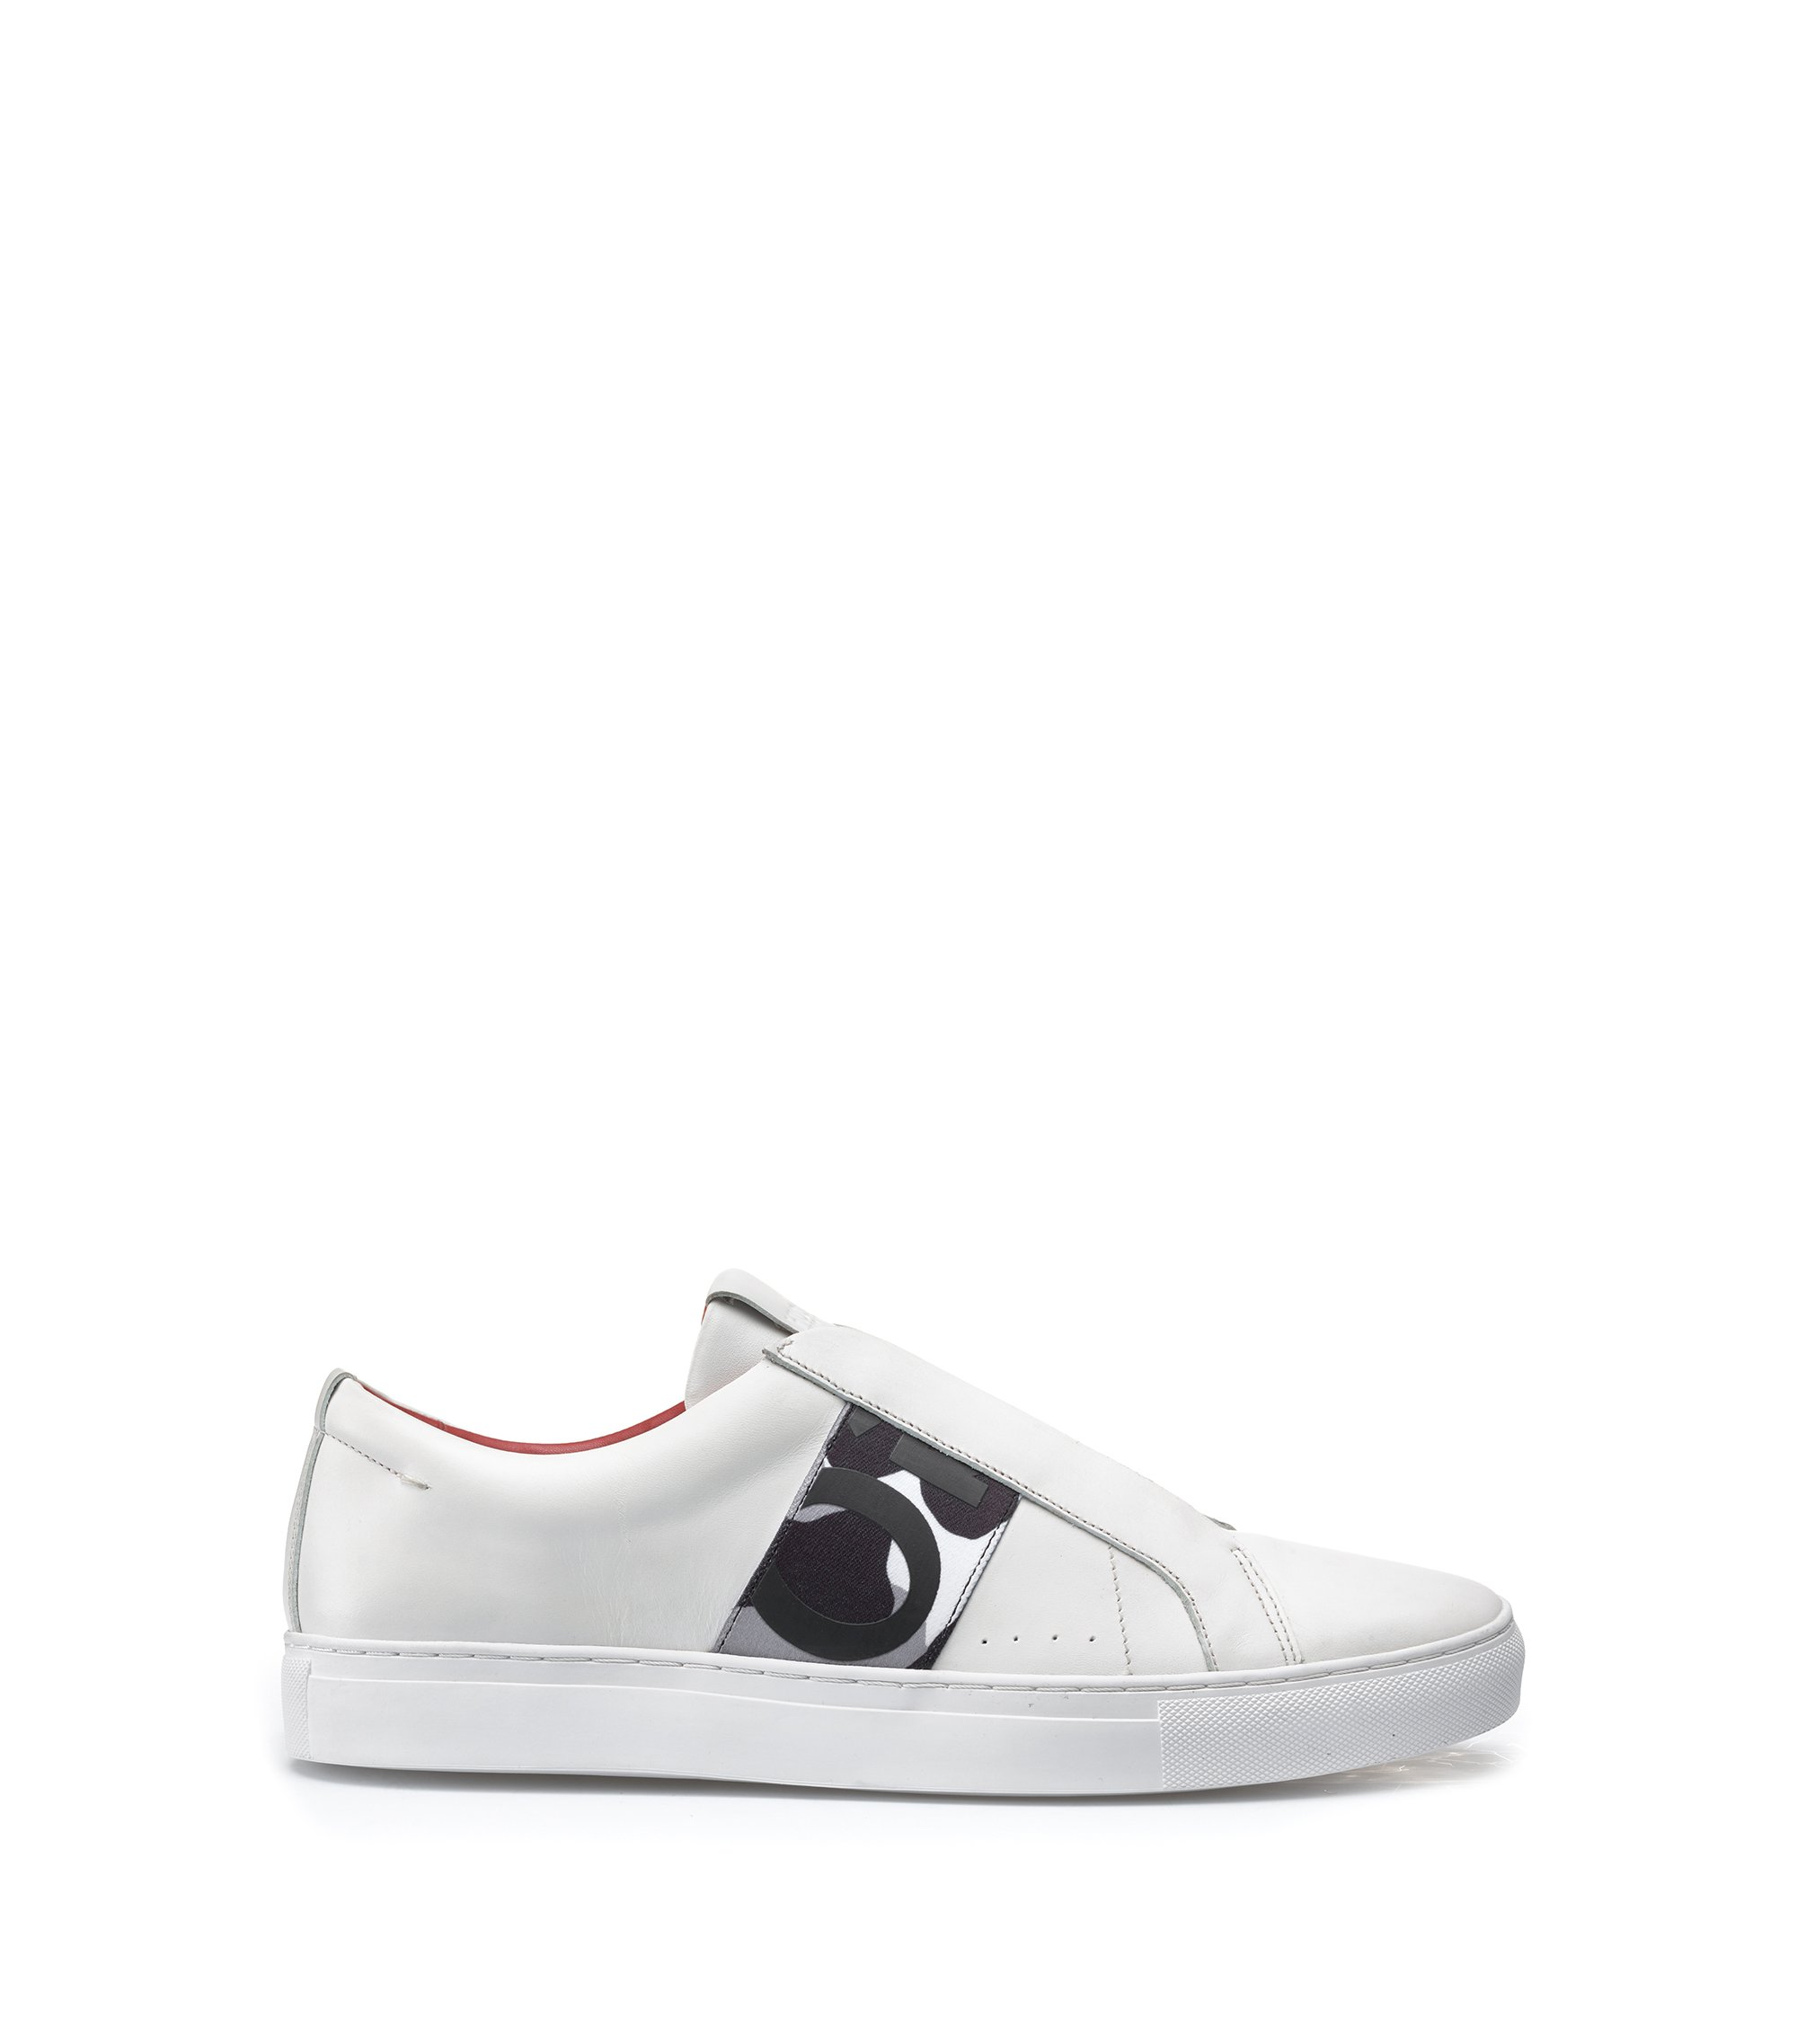 Slip-on trainers in calf leather with elastic trim, White